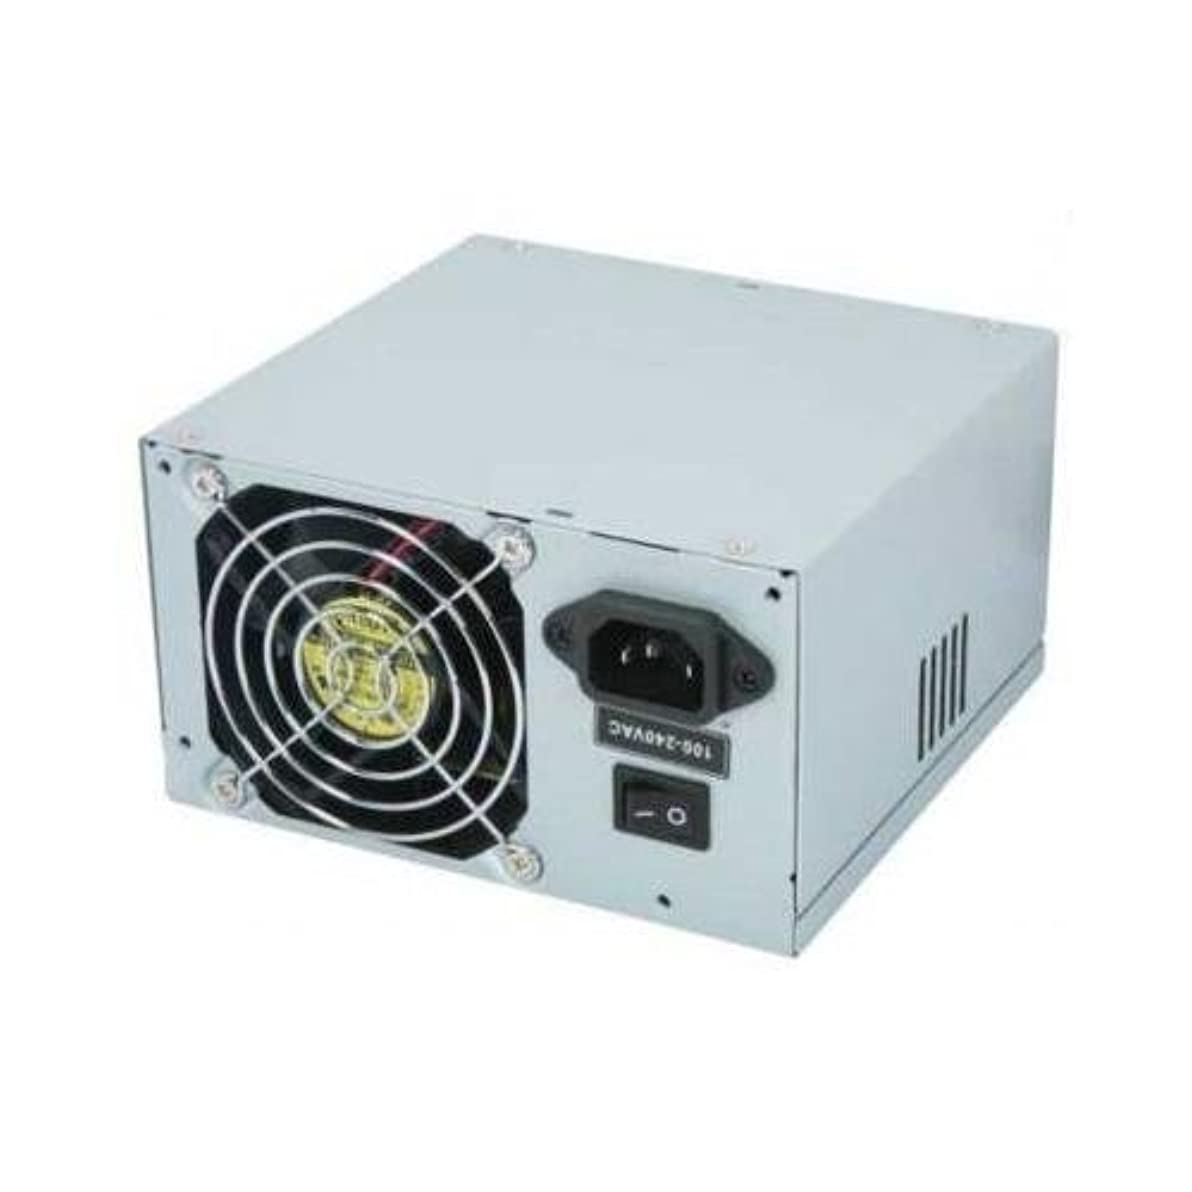 周術期食事を調理する批判的にSeasonic SS-350ES Bronze 350W Active PFC Power Supply 80Plus Bronze 8cm Fan [並行輸入品]